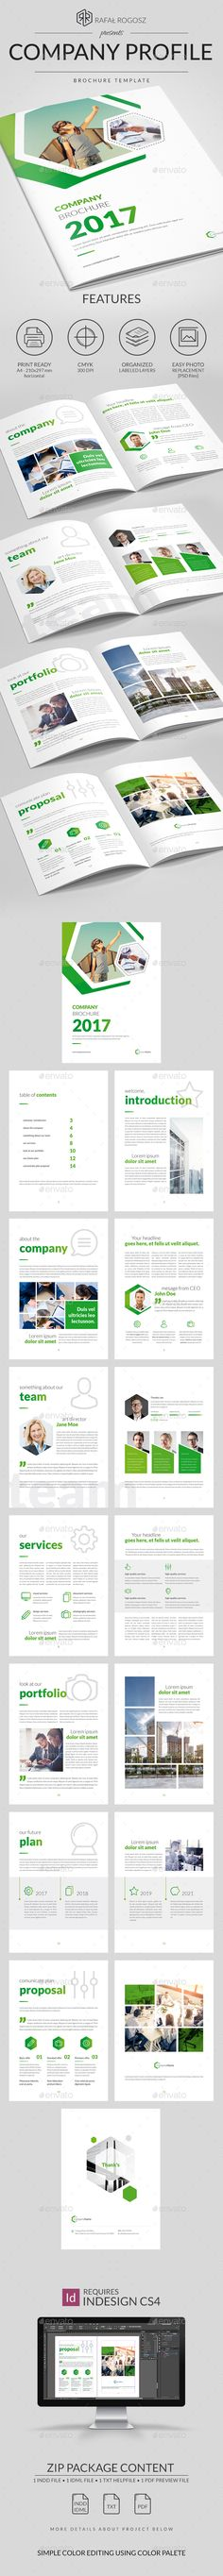 Company Profile Template InDesign INDD Inspire for work - corporate profile template